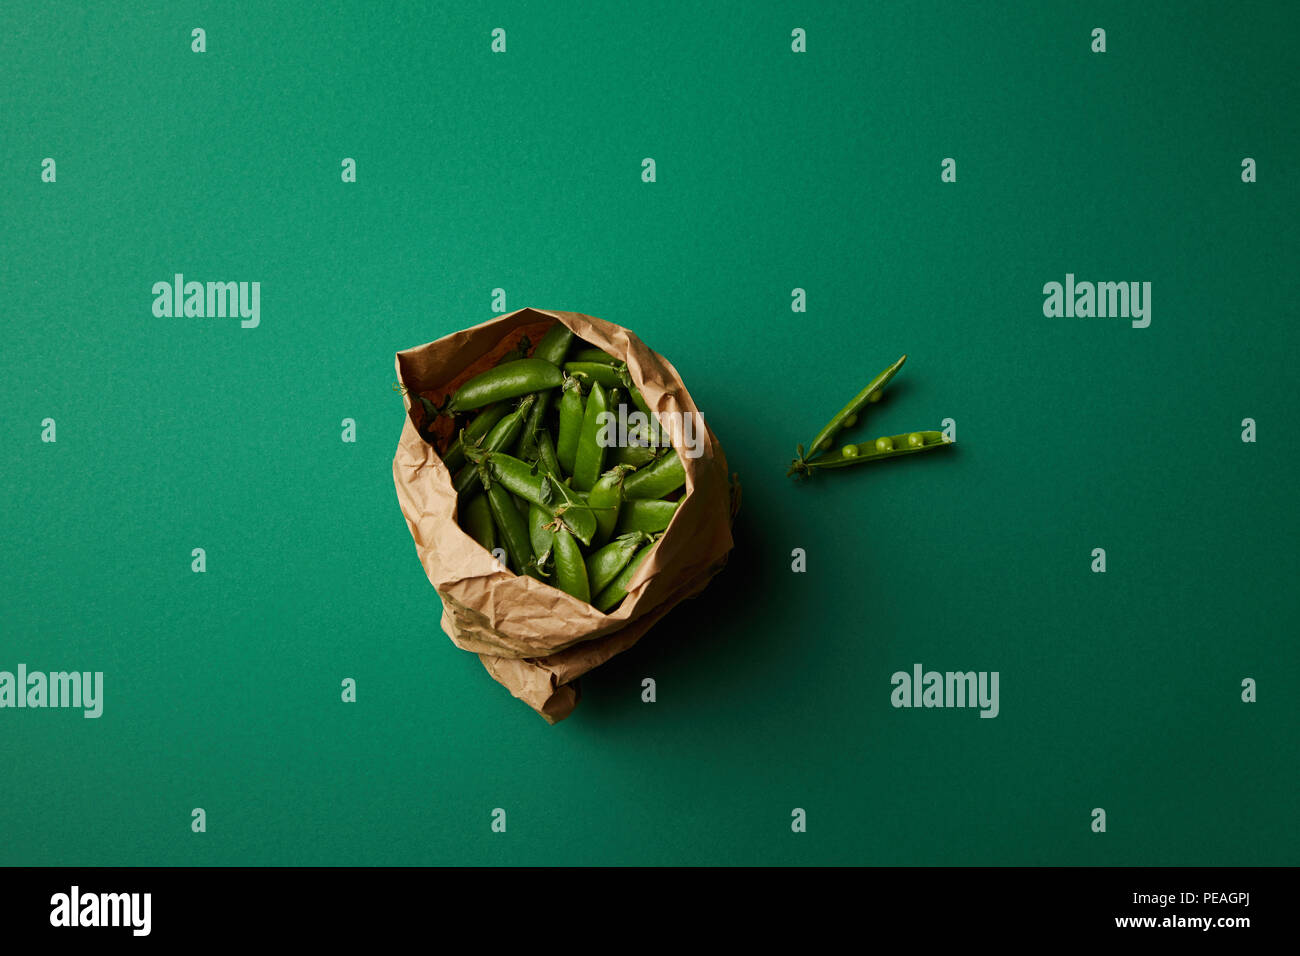 top view of paper bag with pea pods on green surface - Stock Image